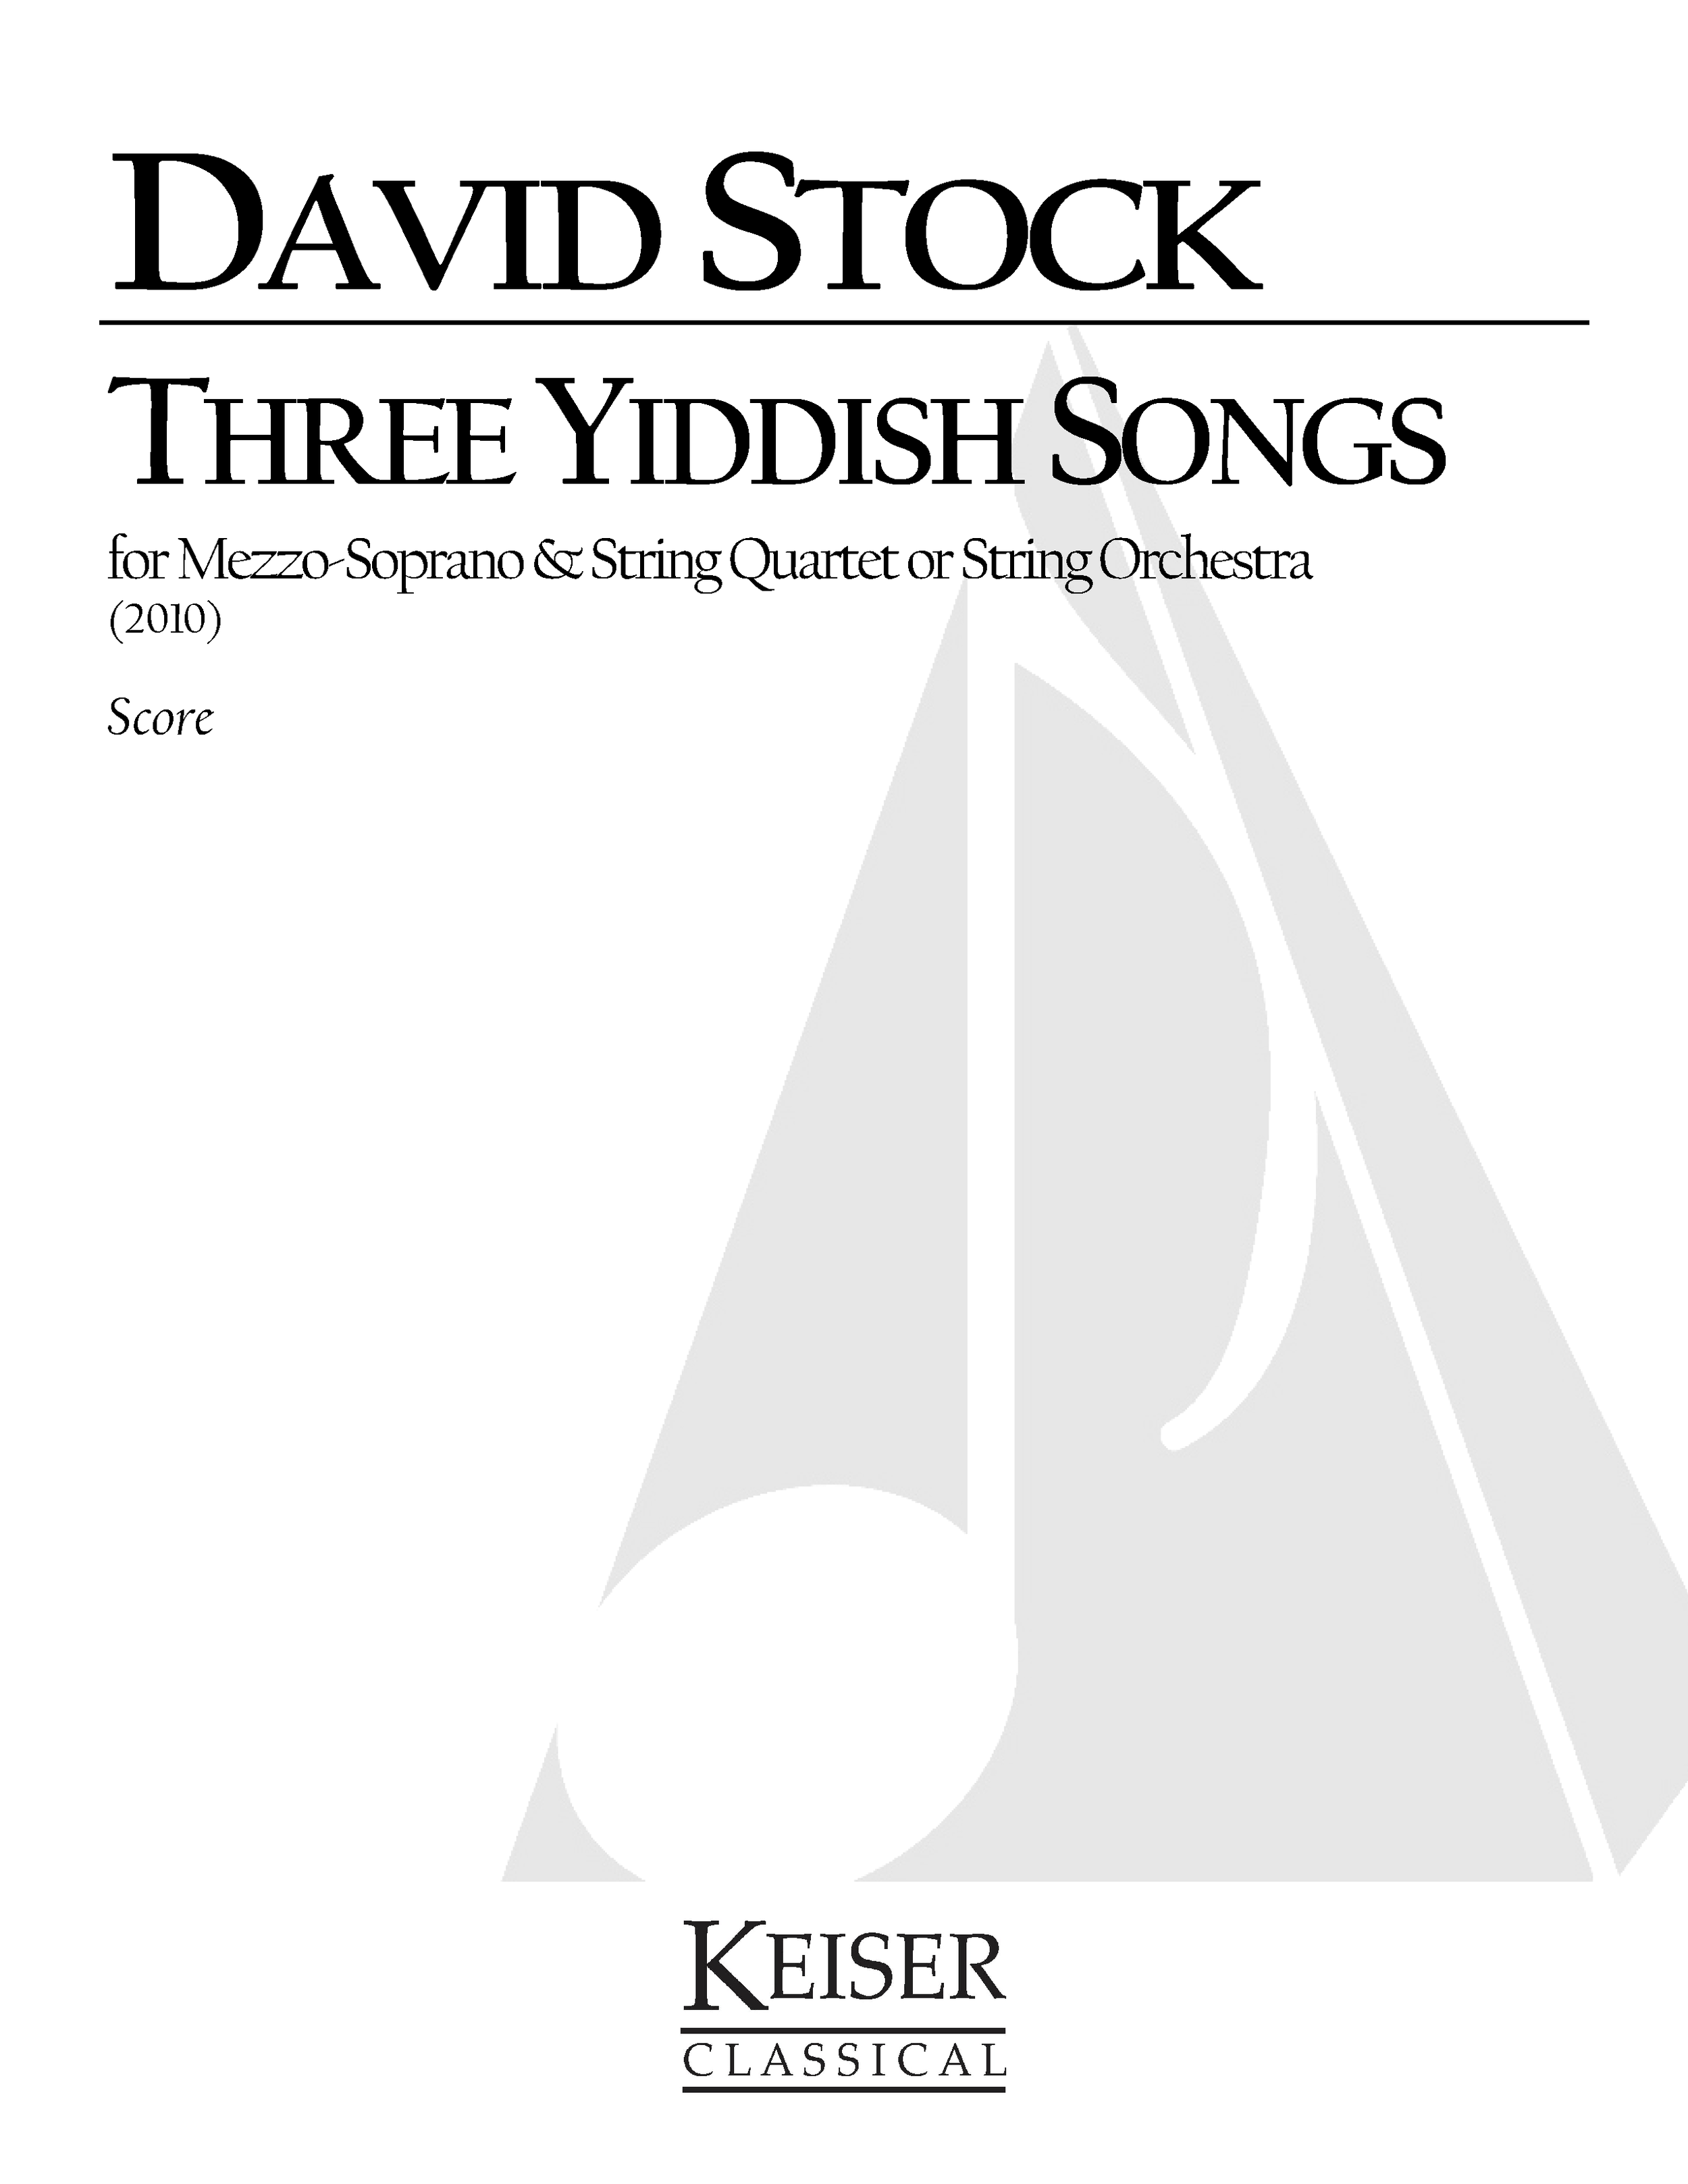 Three Yiddish Songs (2010/2011)  - Mezzo-Soprano, String QuartetRent/Buy: Keiser Music WATCH: